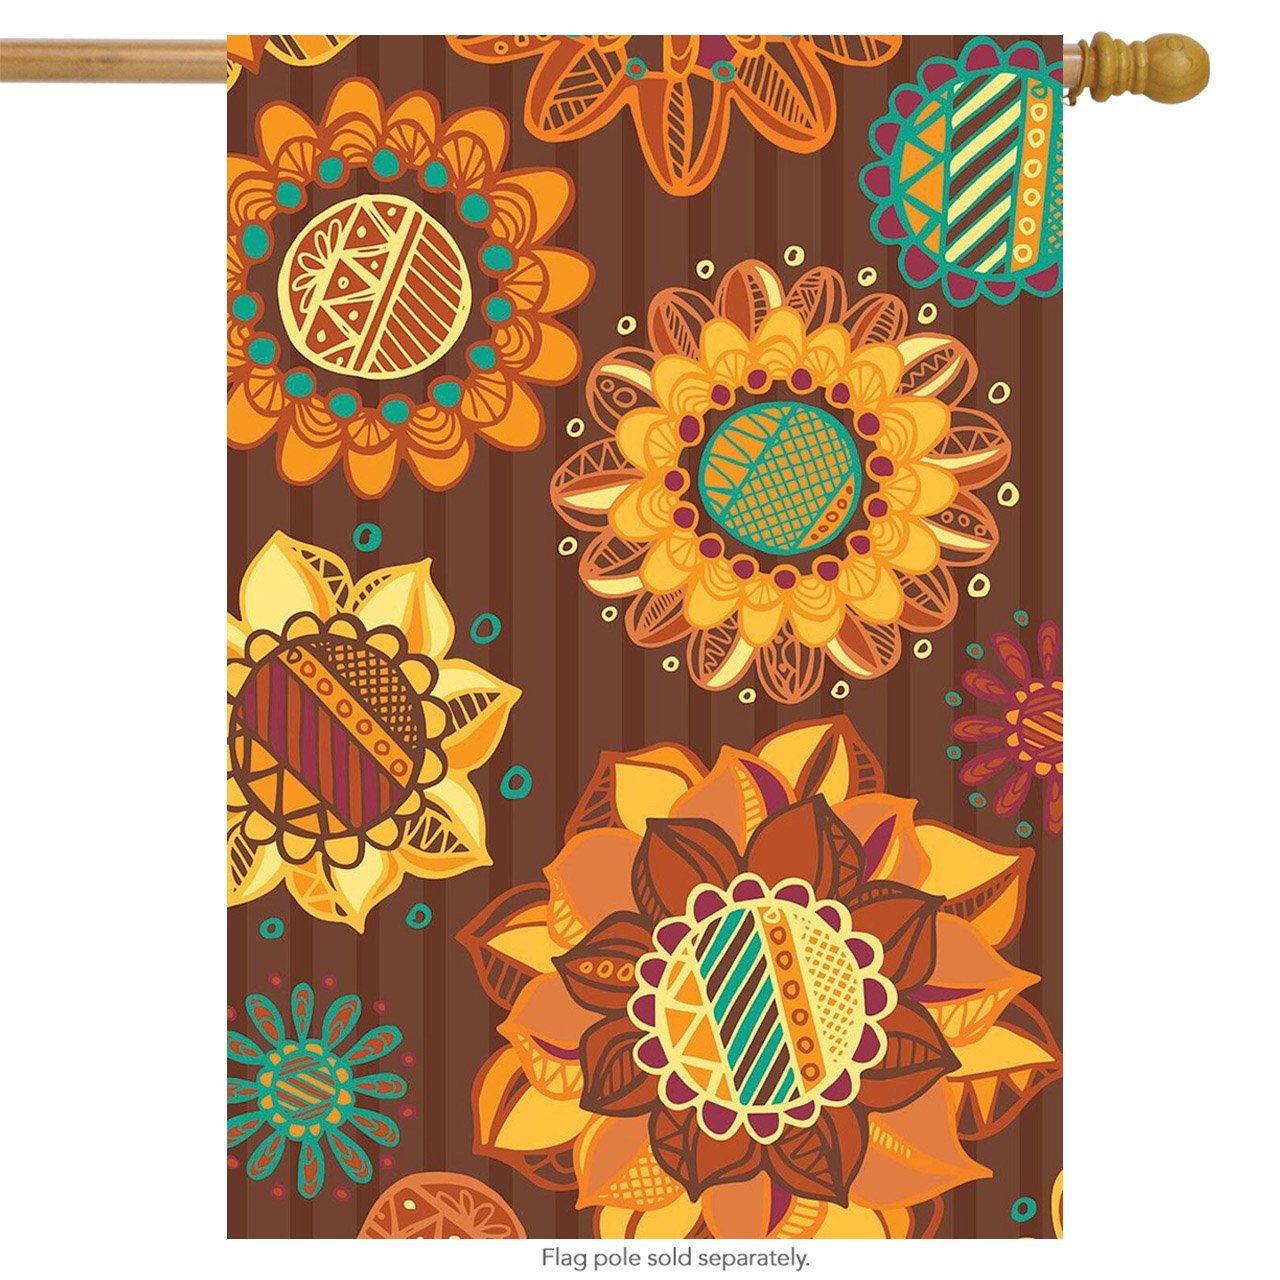 Sensational Sunflowers Primitive Garden Flag, #G00504